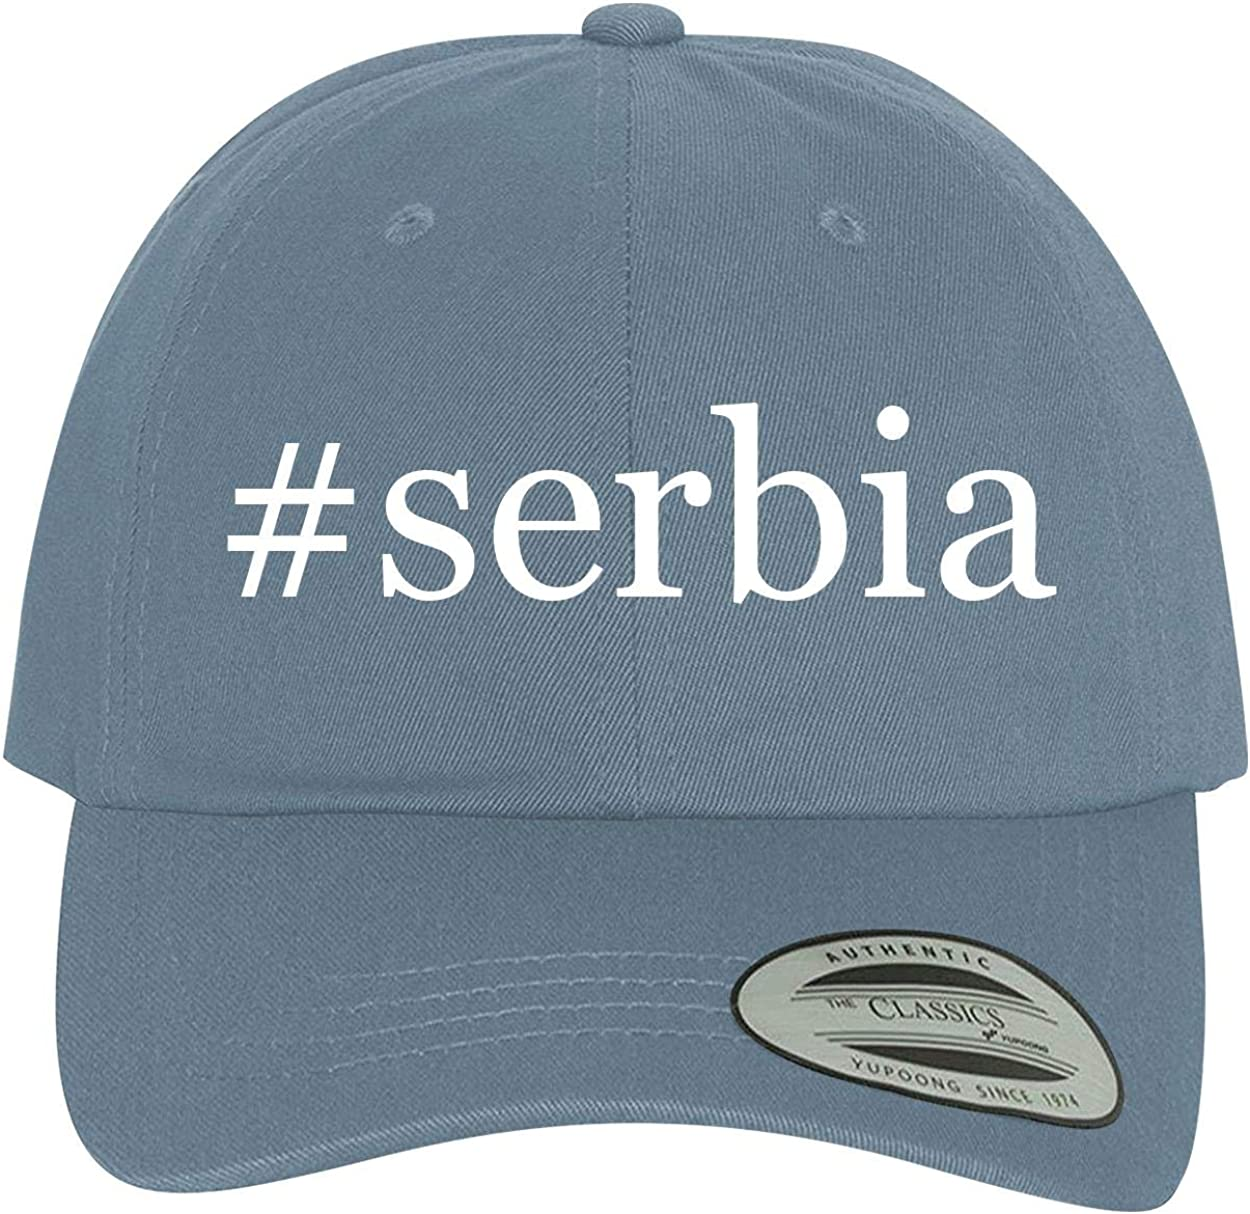 Comfortable Dad Hat Baseball Cap BH Cool Designs #Serbia